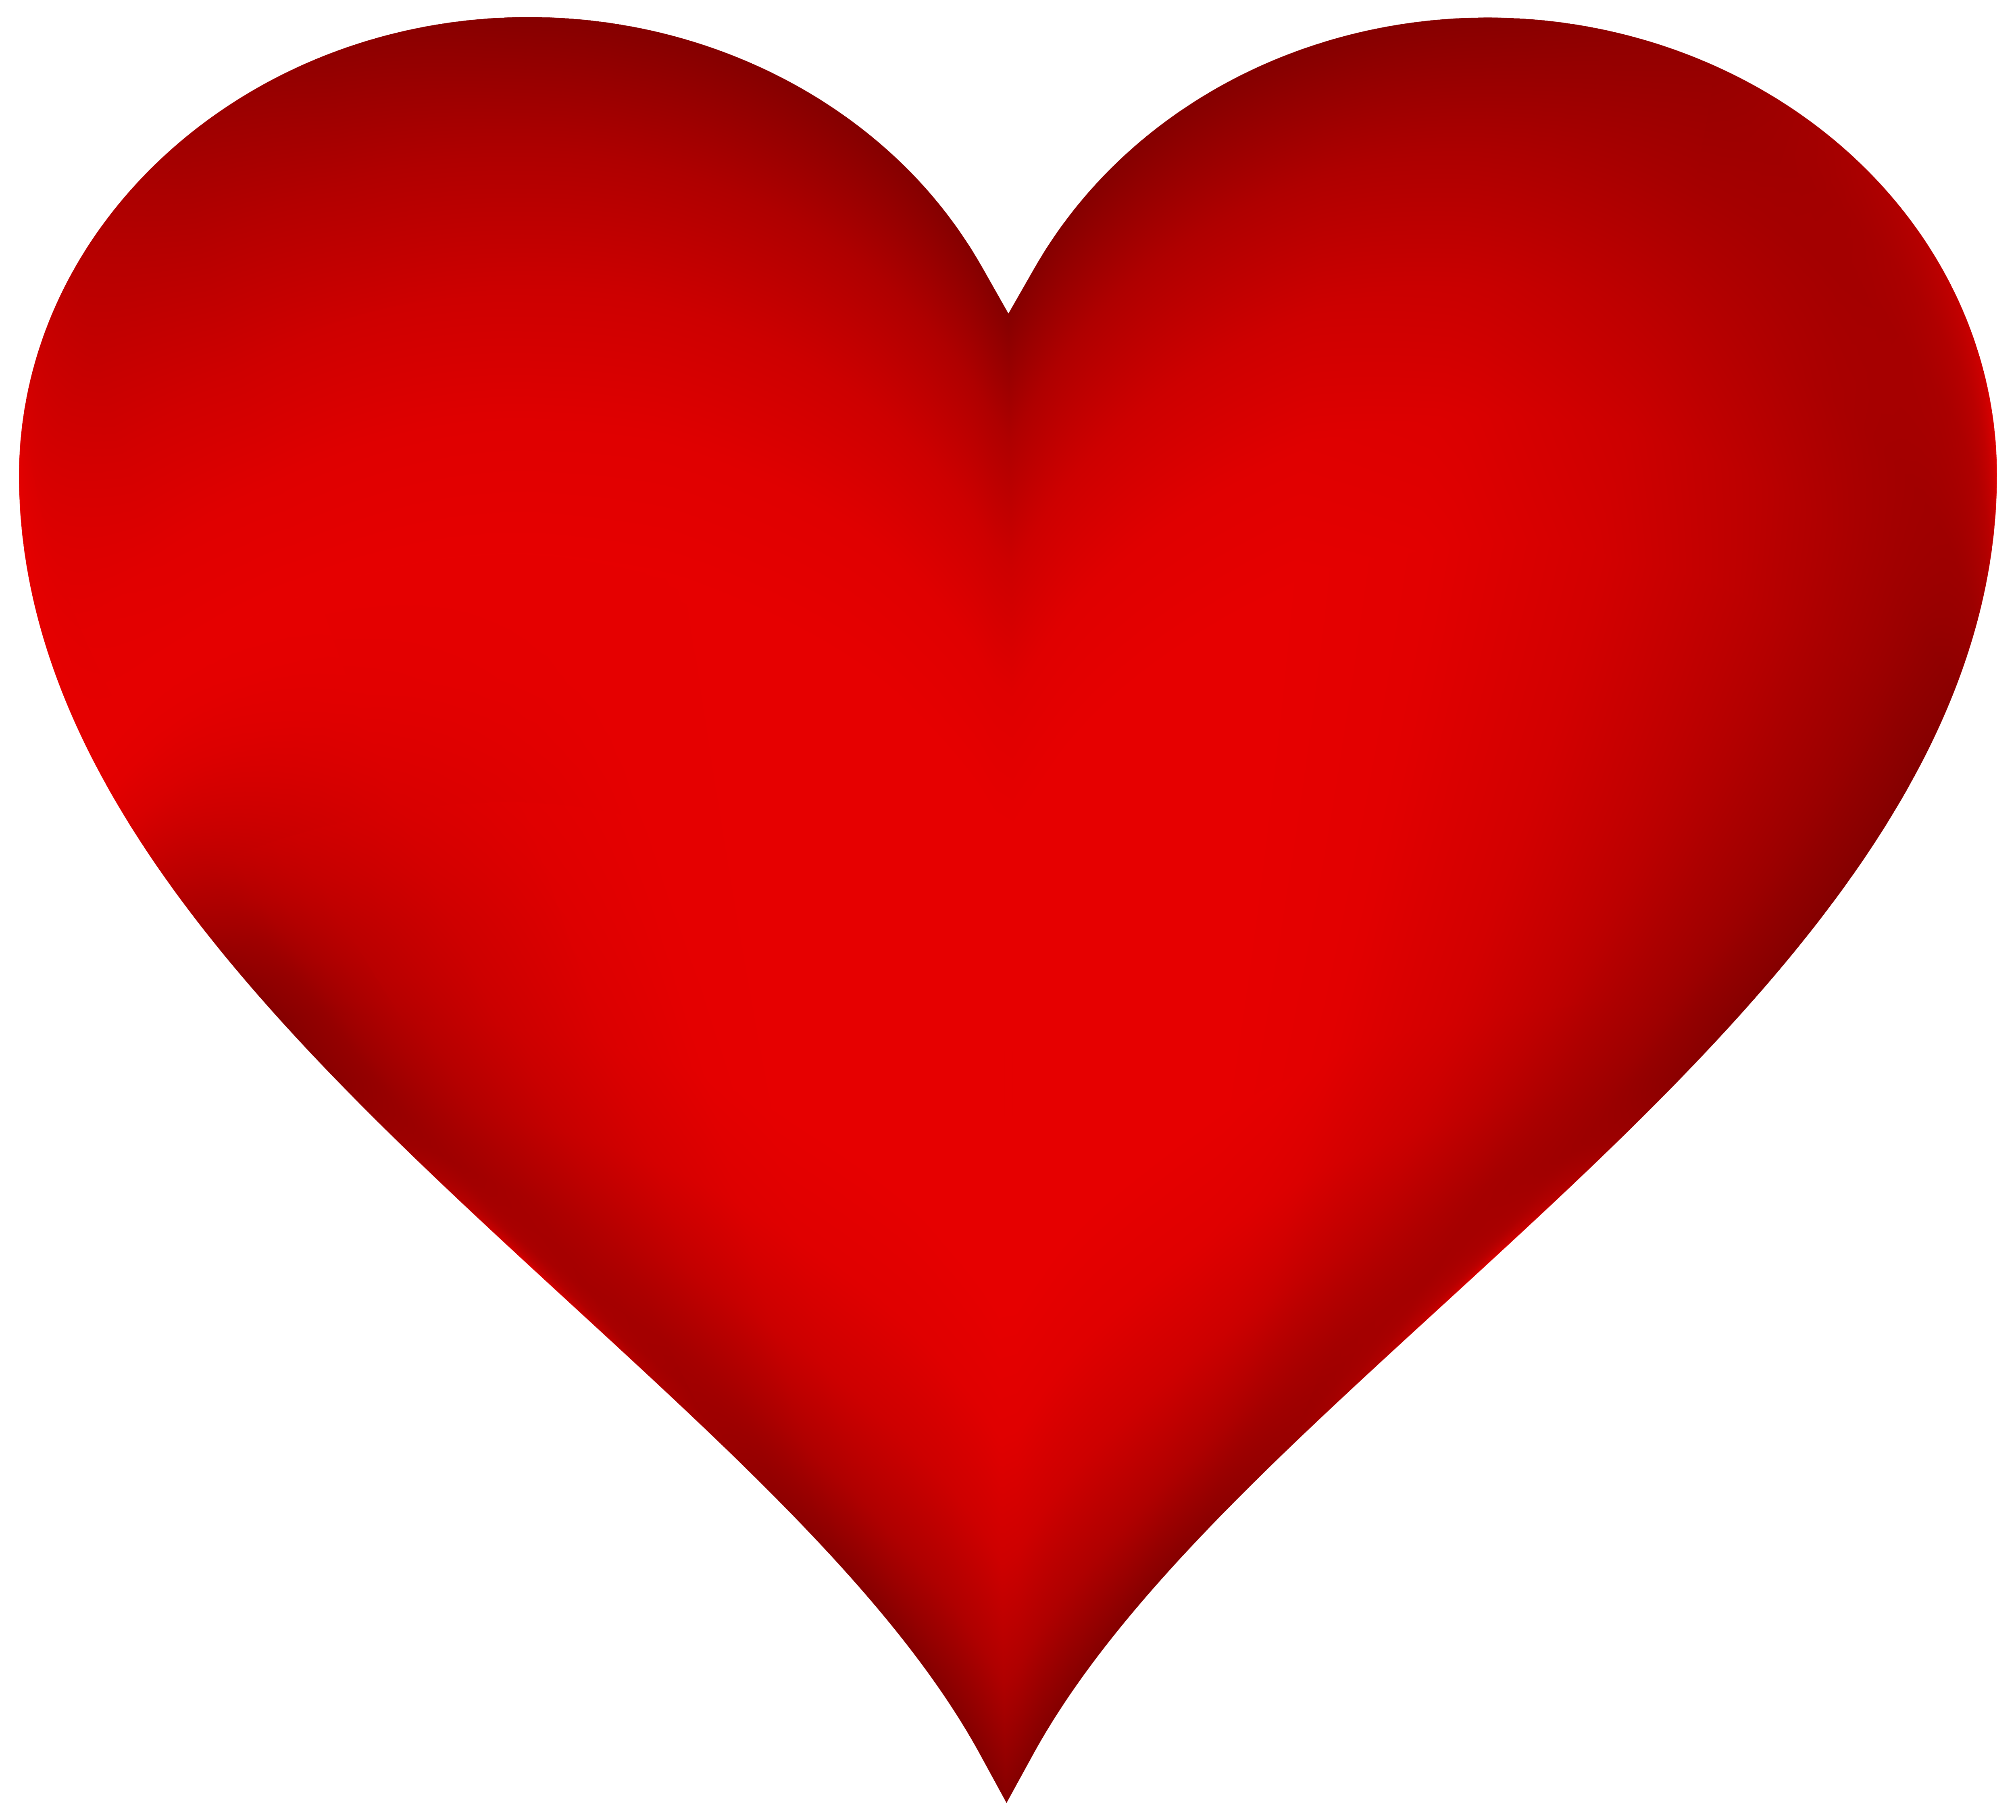 clipart library stock Chalk clipart heart. Png group best web.